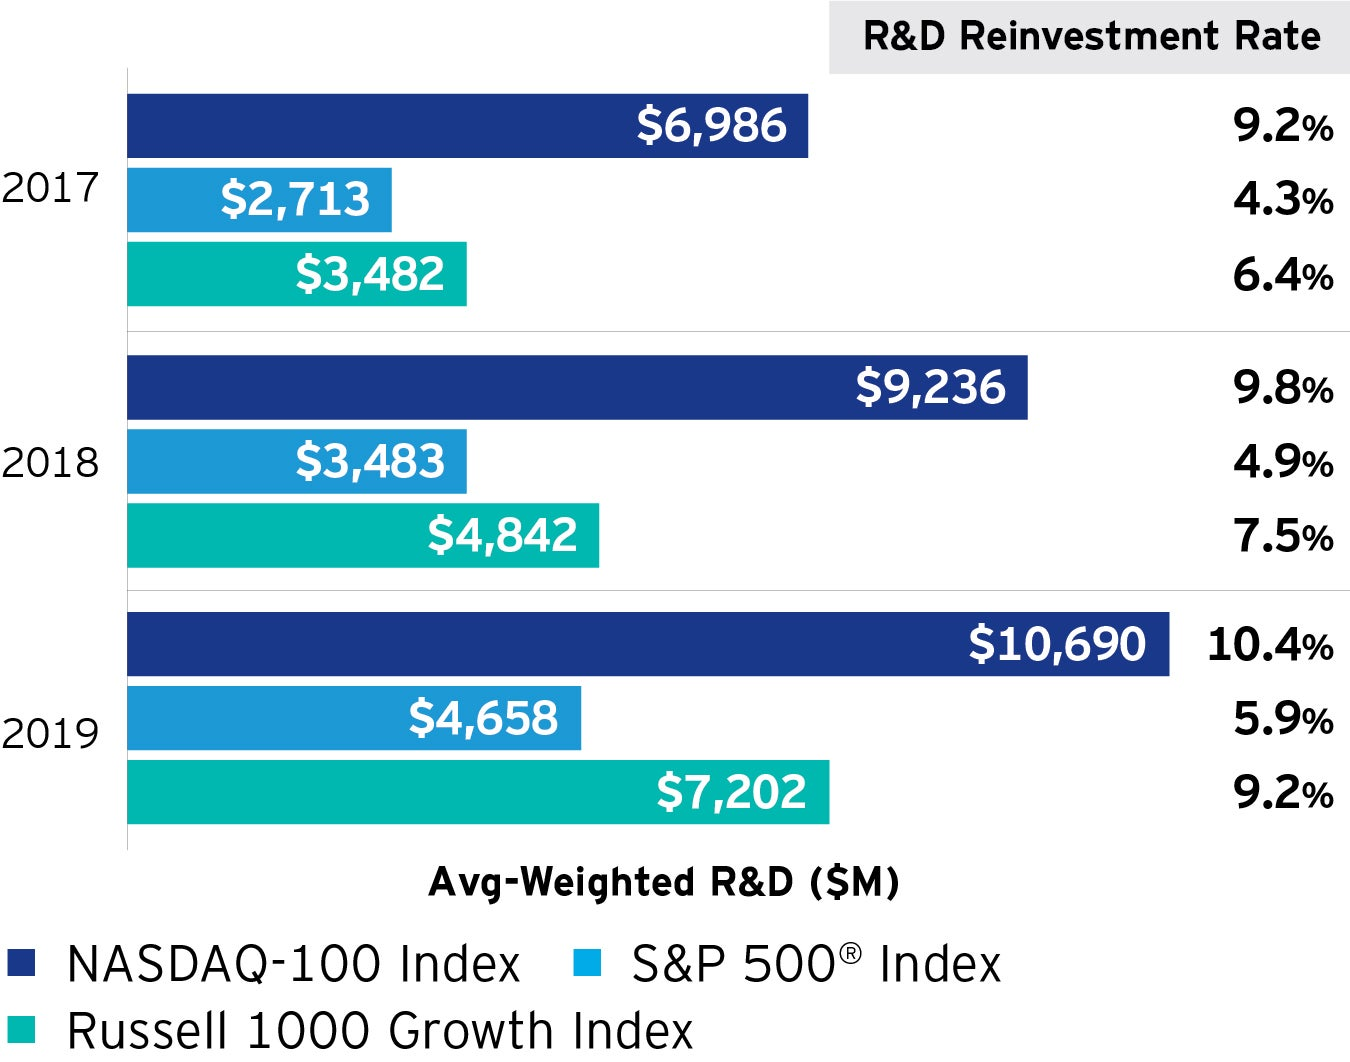 Figure 3: The NASDAQ-100 companies spend more on research and development